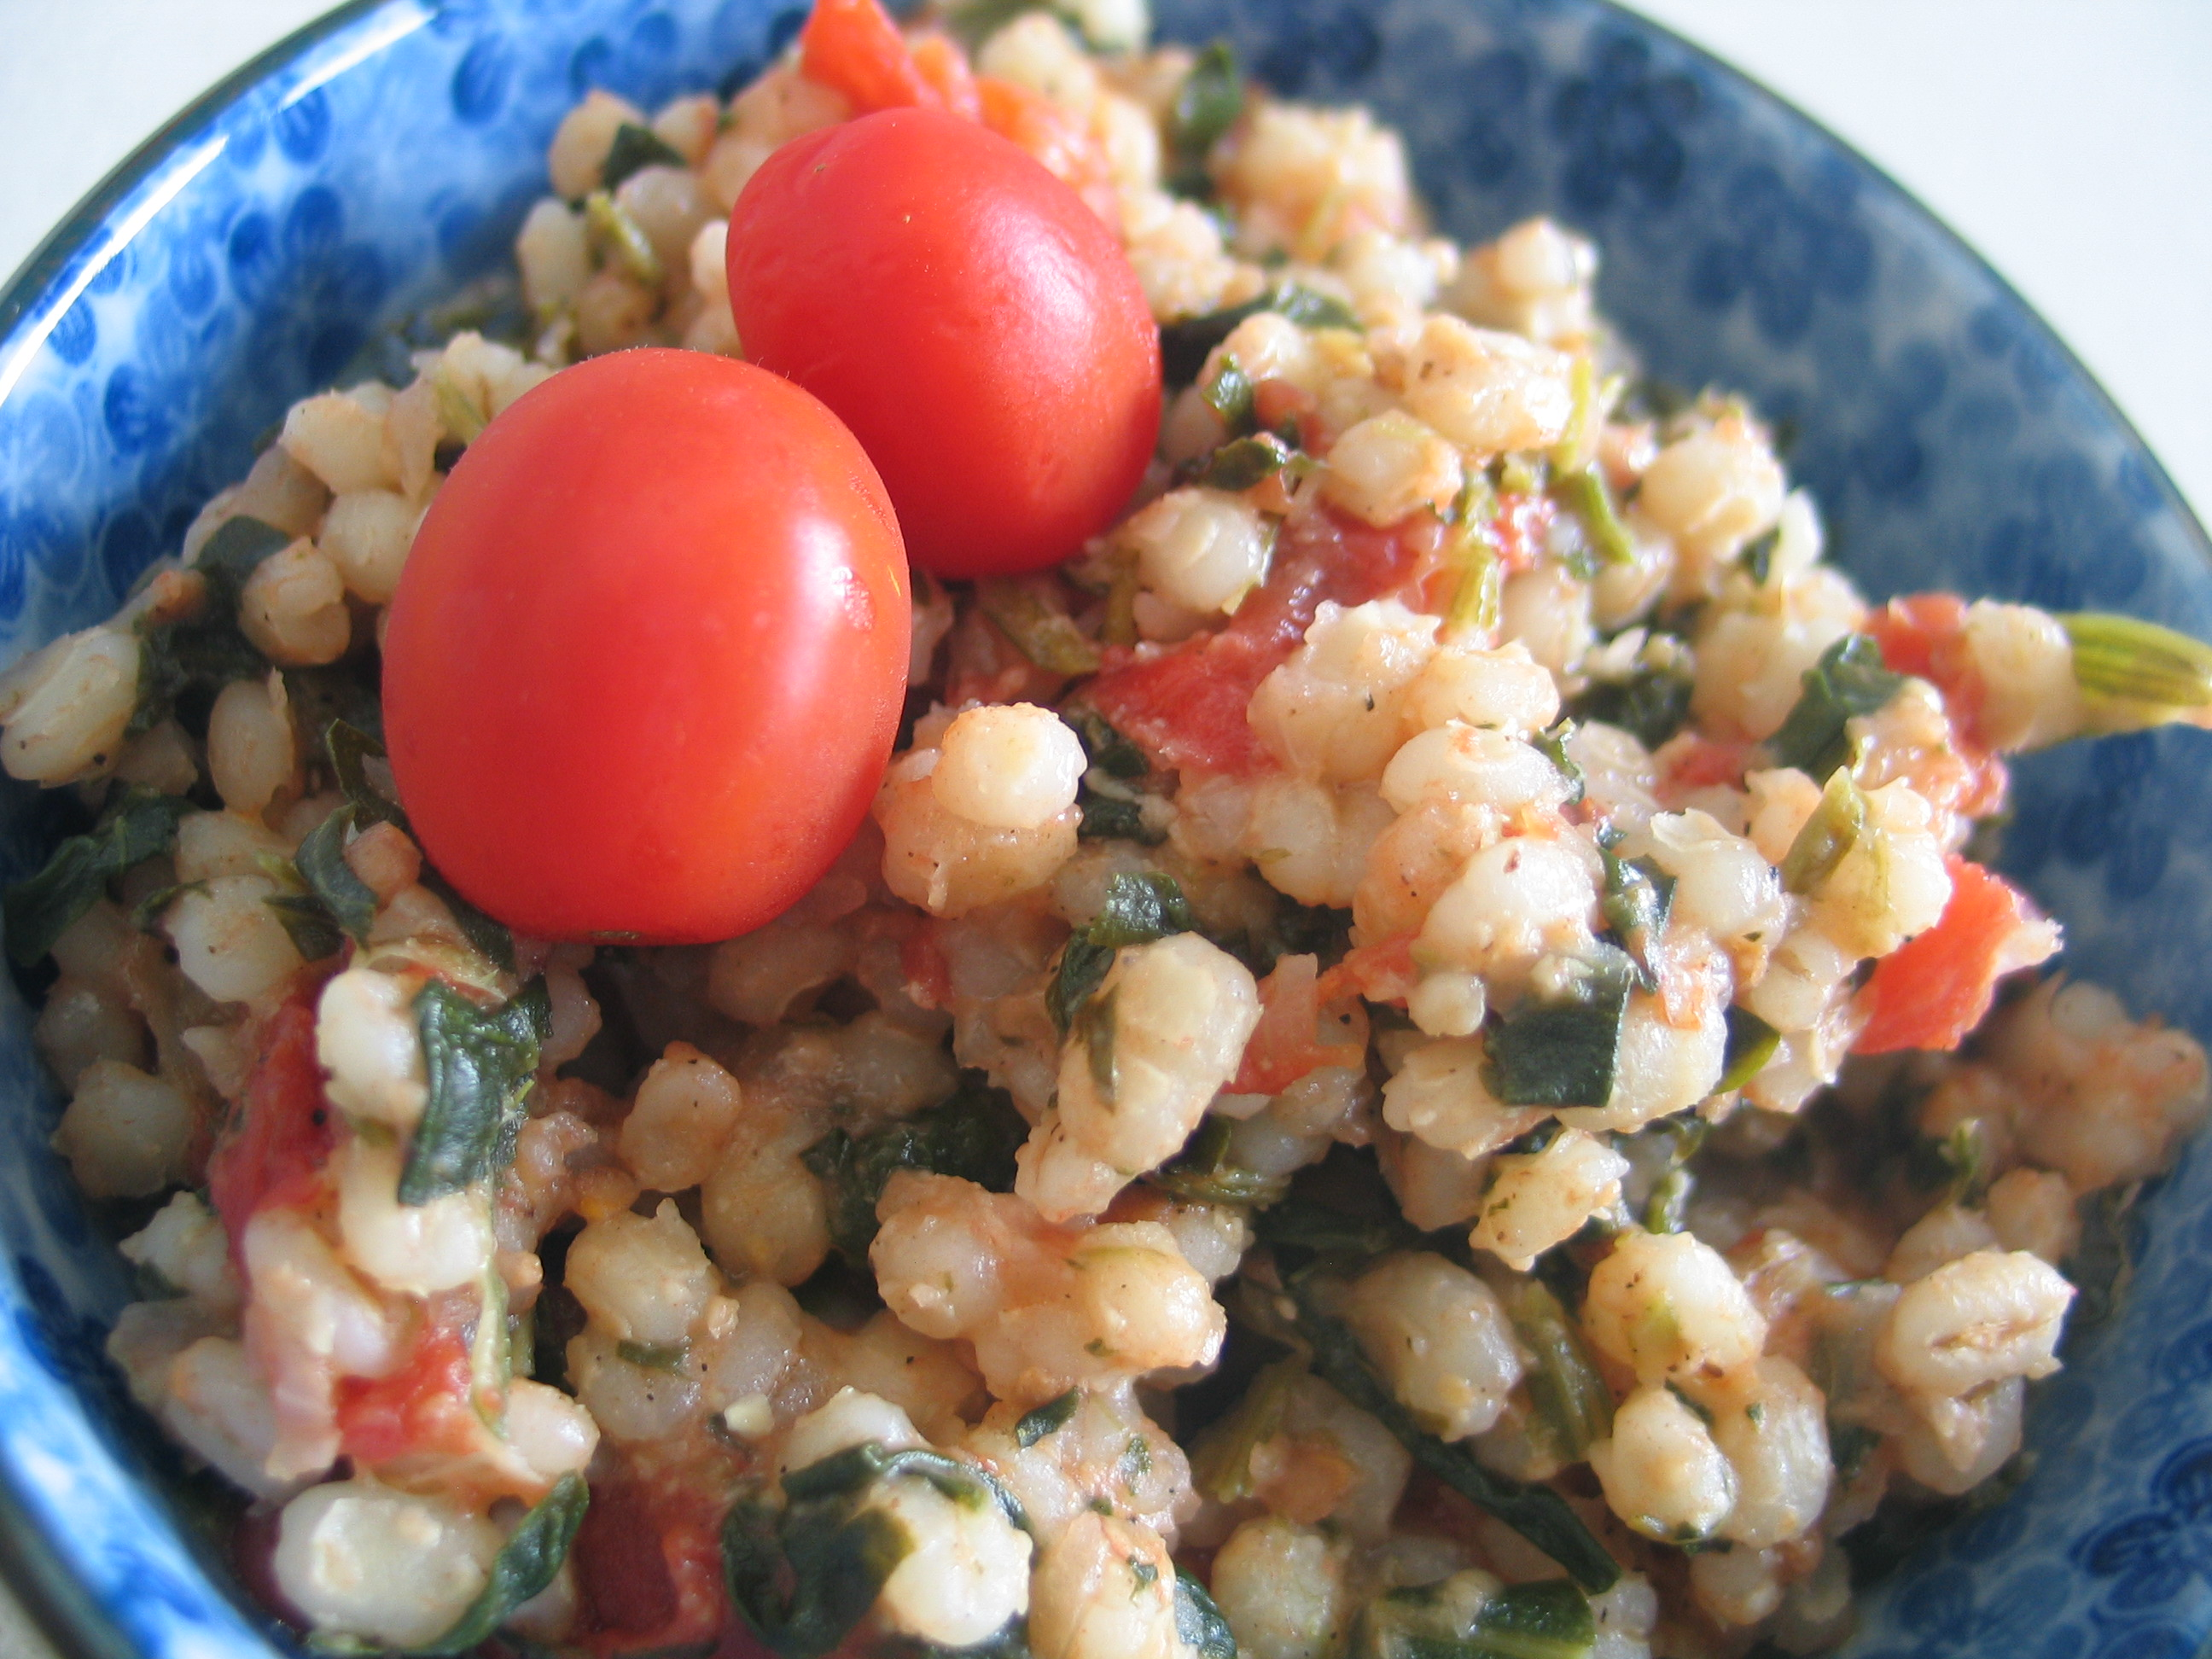 Tomato, Spinach and Barley Risotto